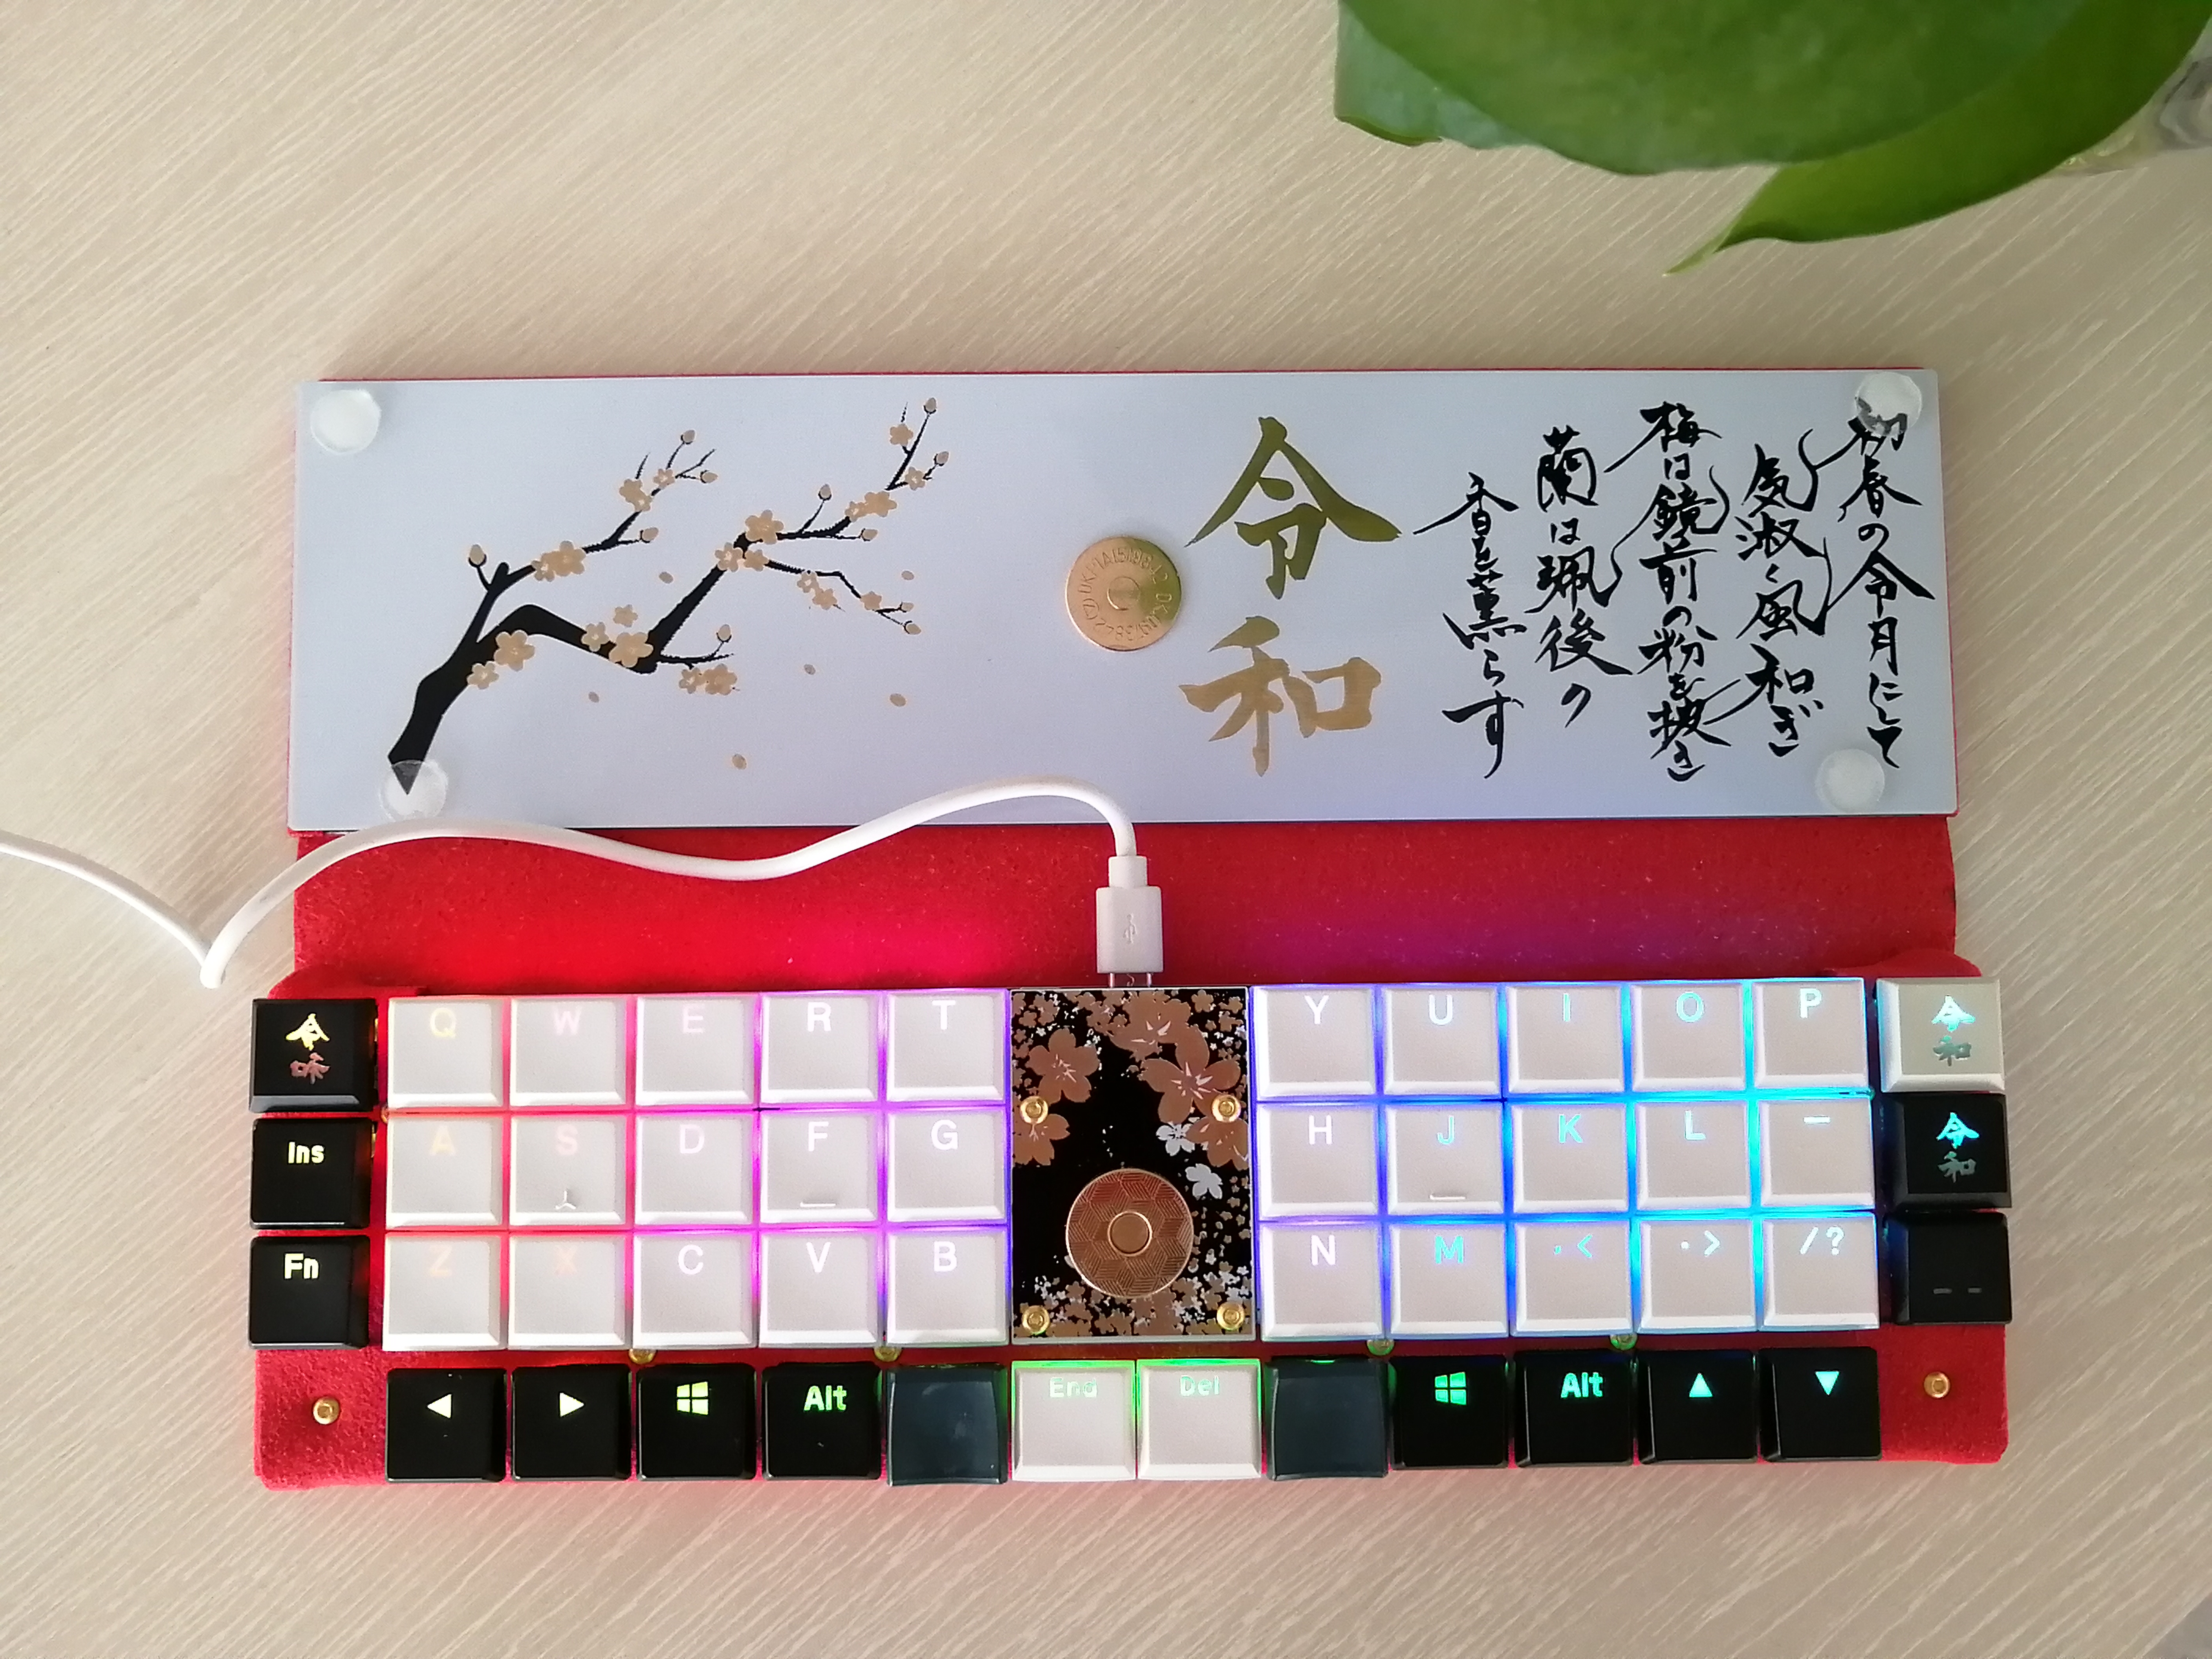 Keyboard With Kailh Choc Switch.jpg